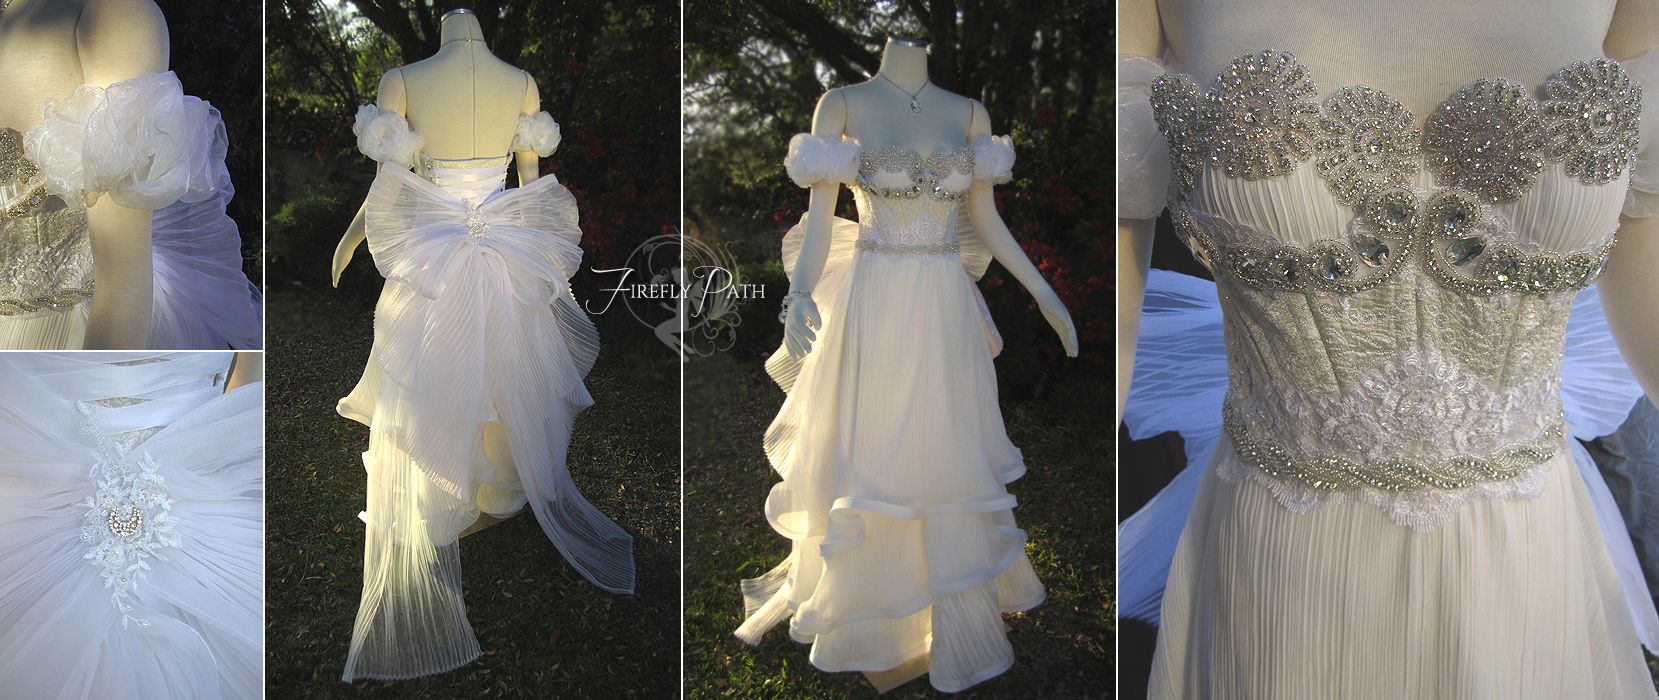 Sailor Moon Princess Serenity Gown By Firefly Path